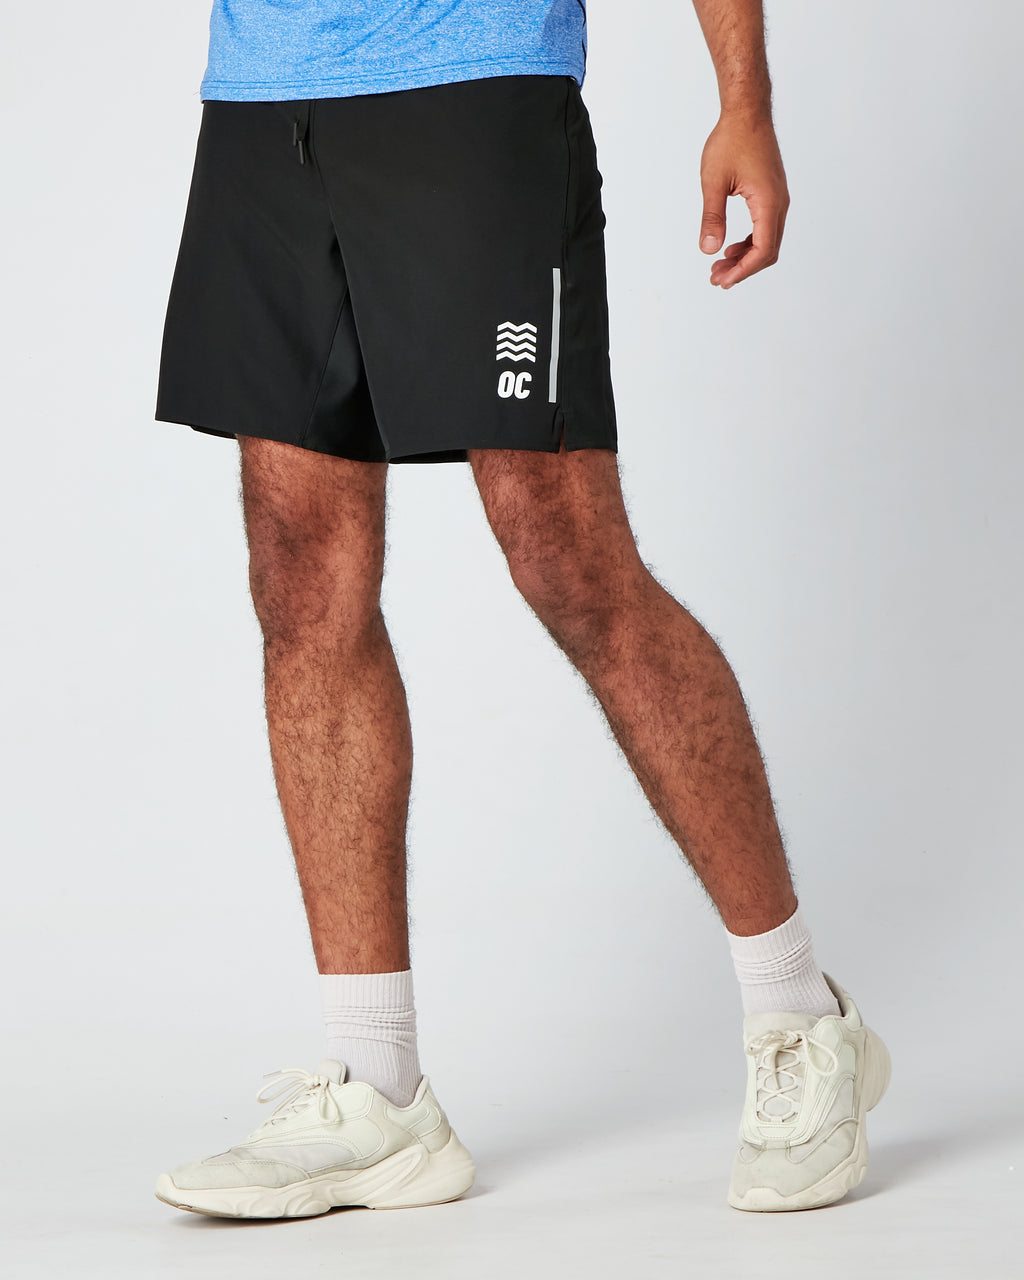 OC Eco Training Shorts